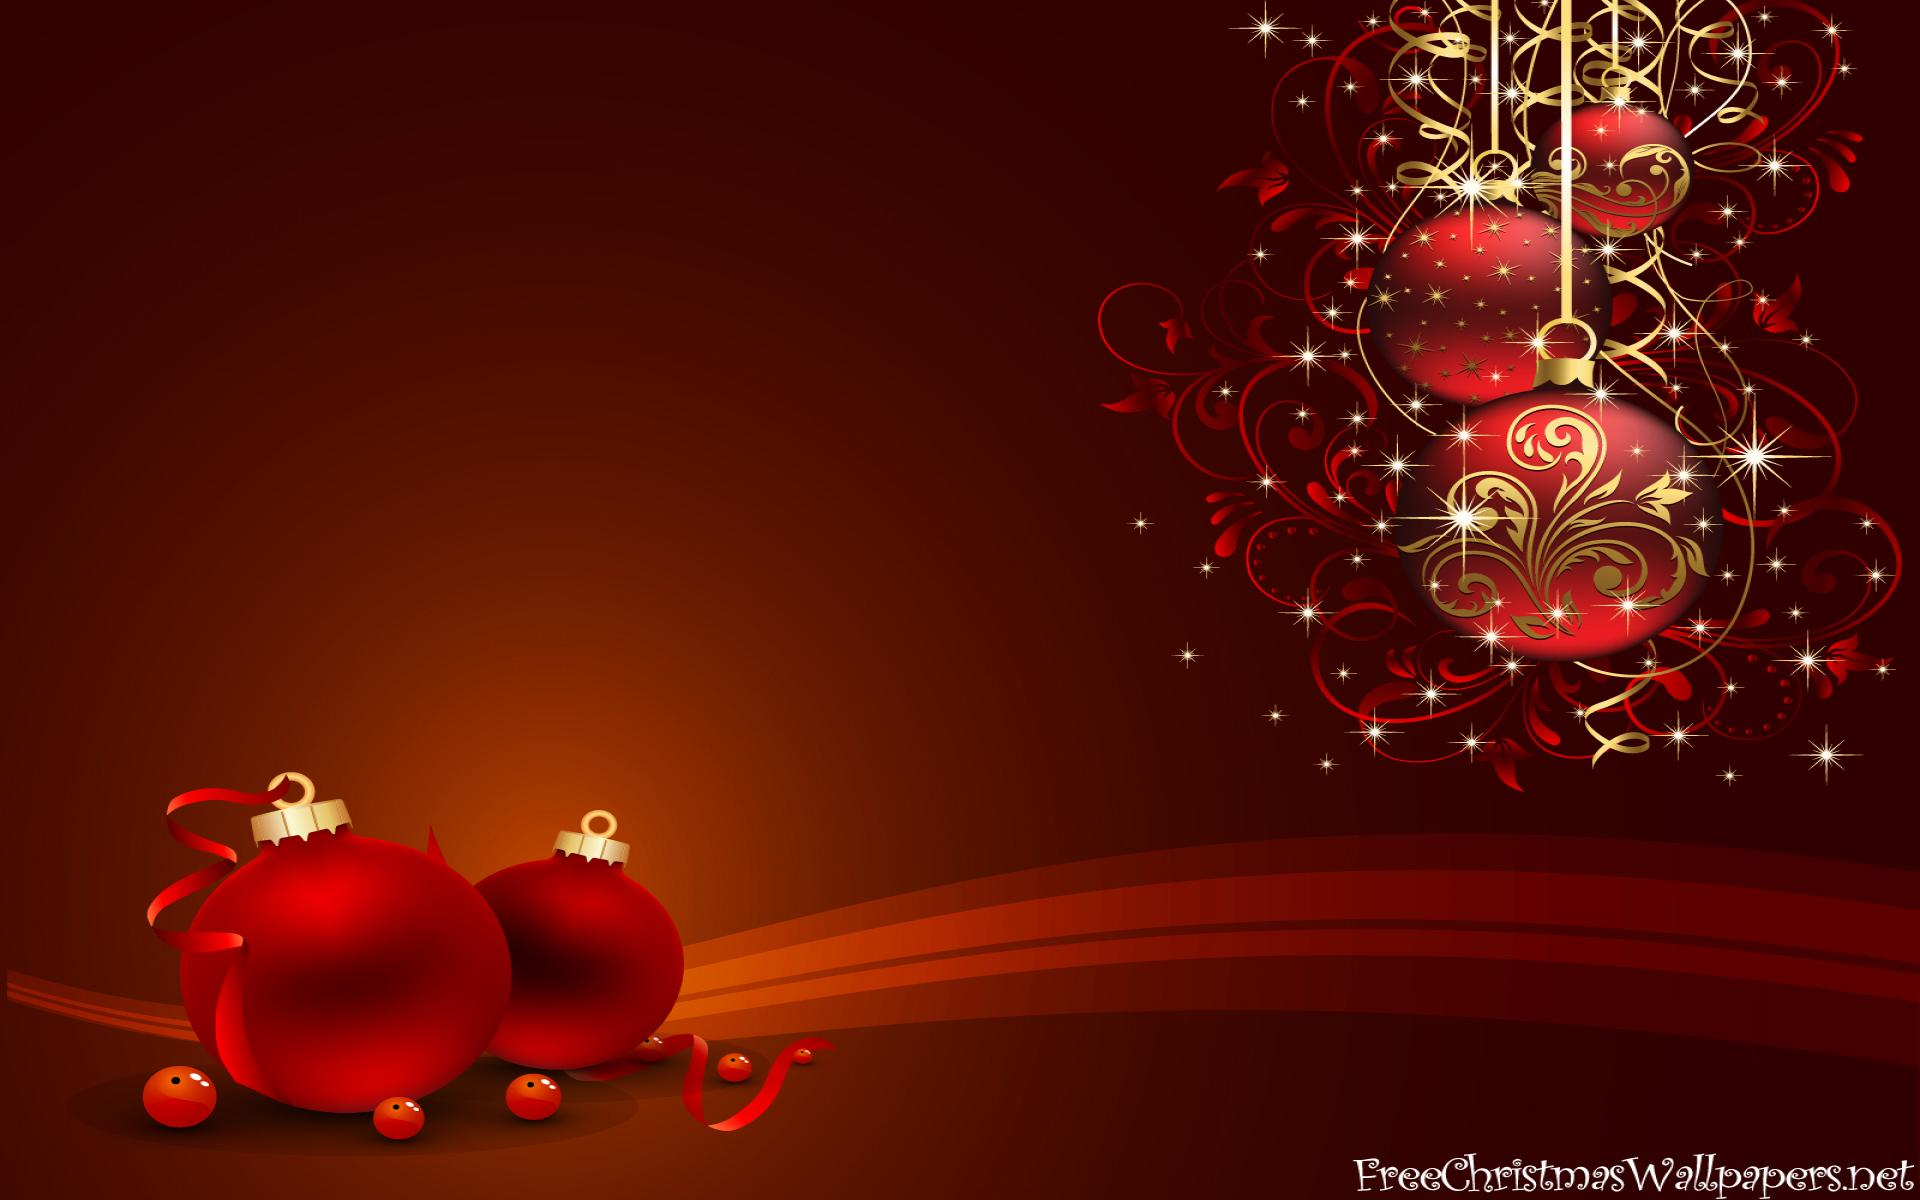 After Christmas HD Wallpapers 1920x1200 Christmas Wallpapers 1920x1200 1920x1200